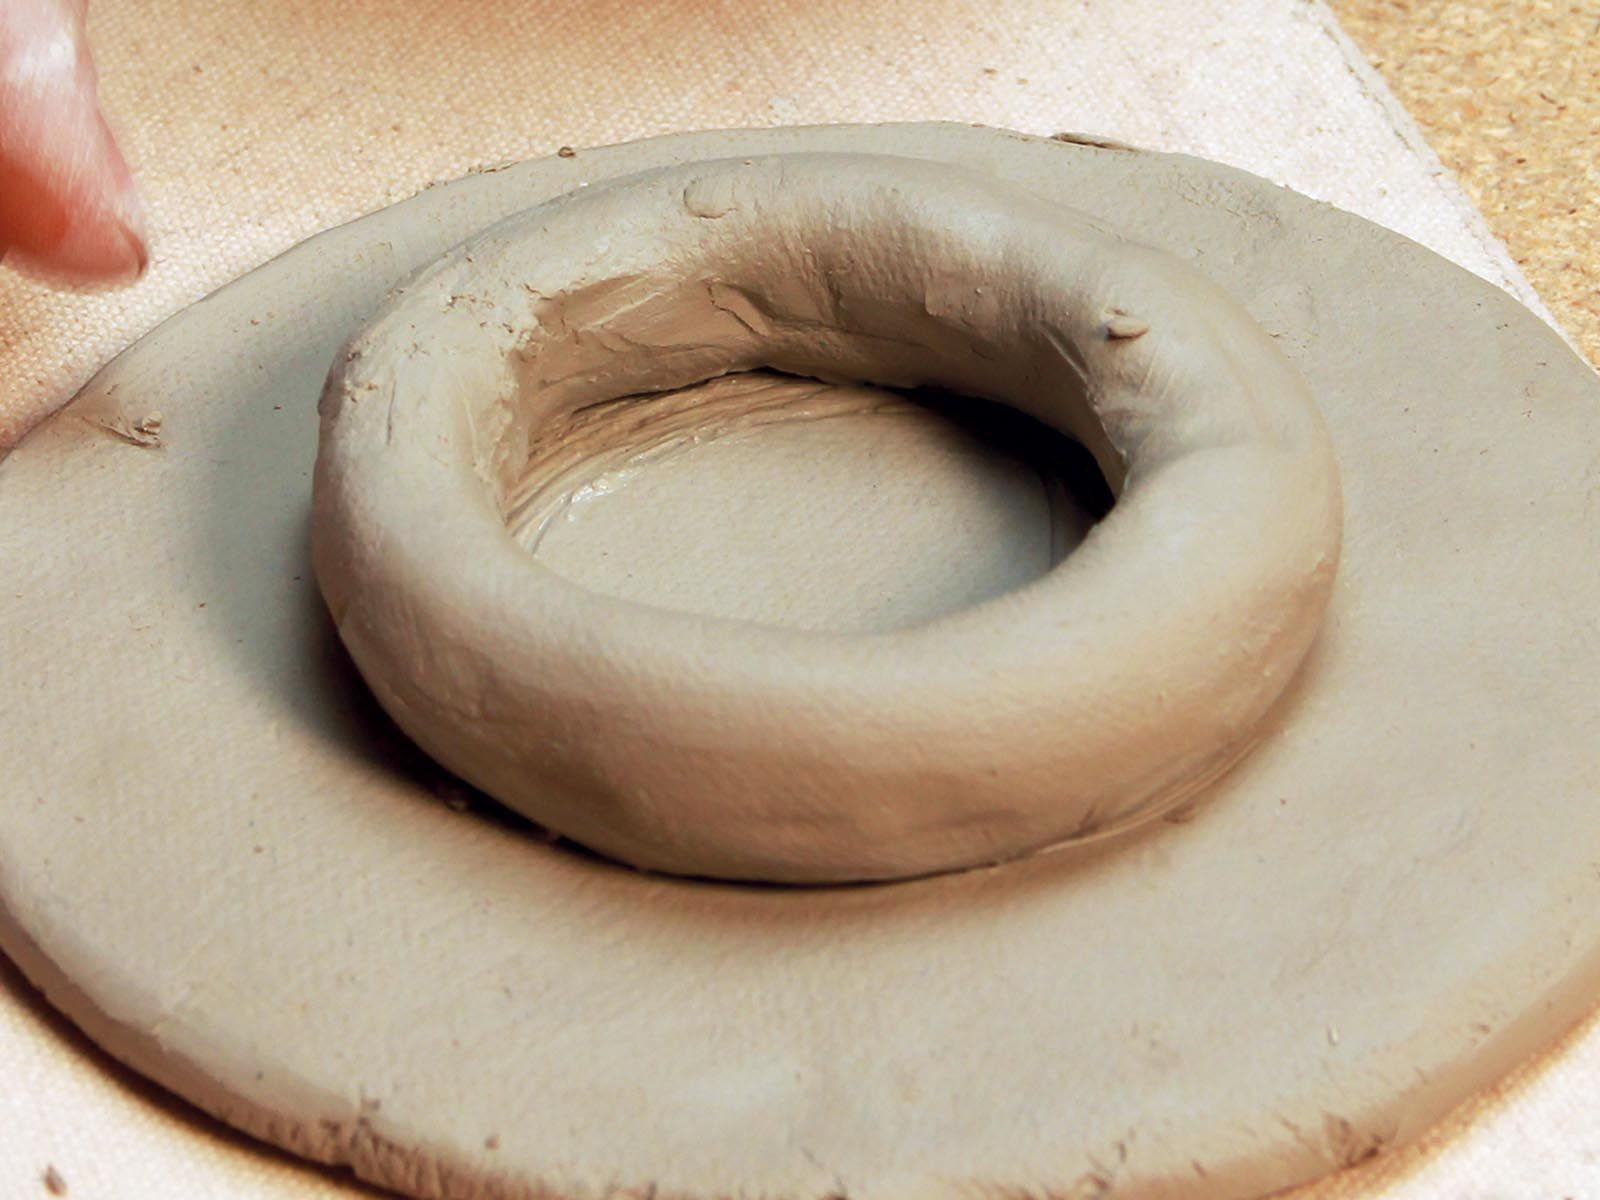 Alternately create the saucer foot with a coil of clay